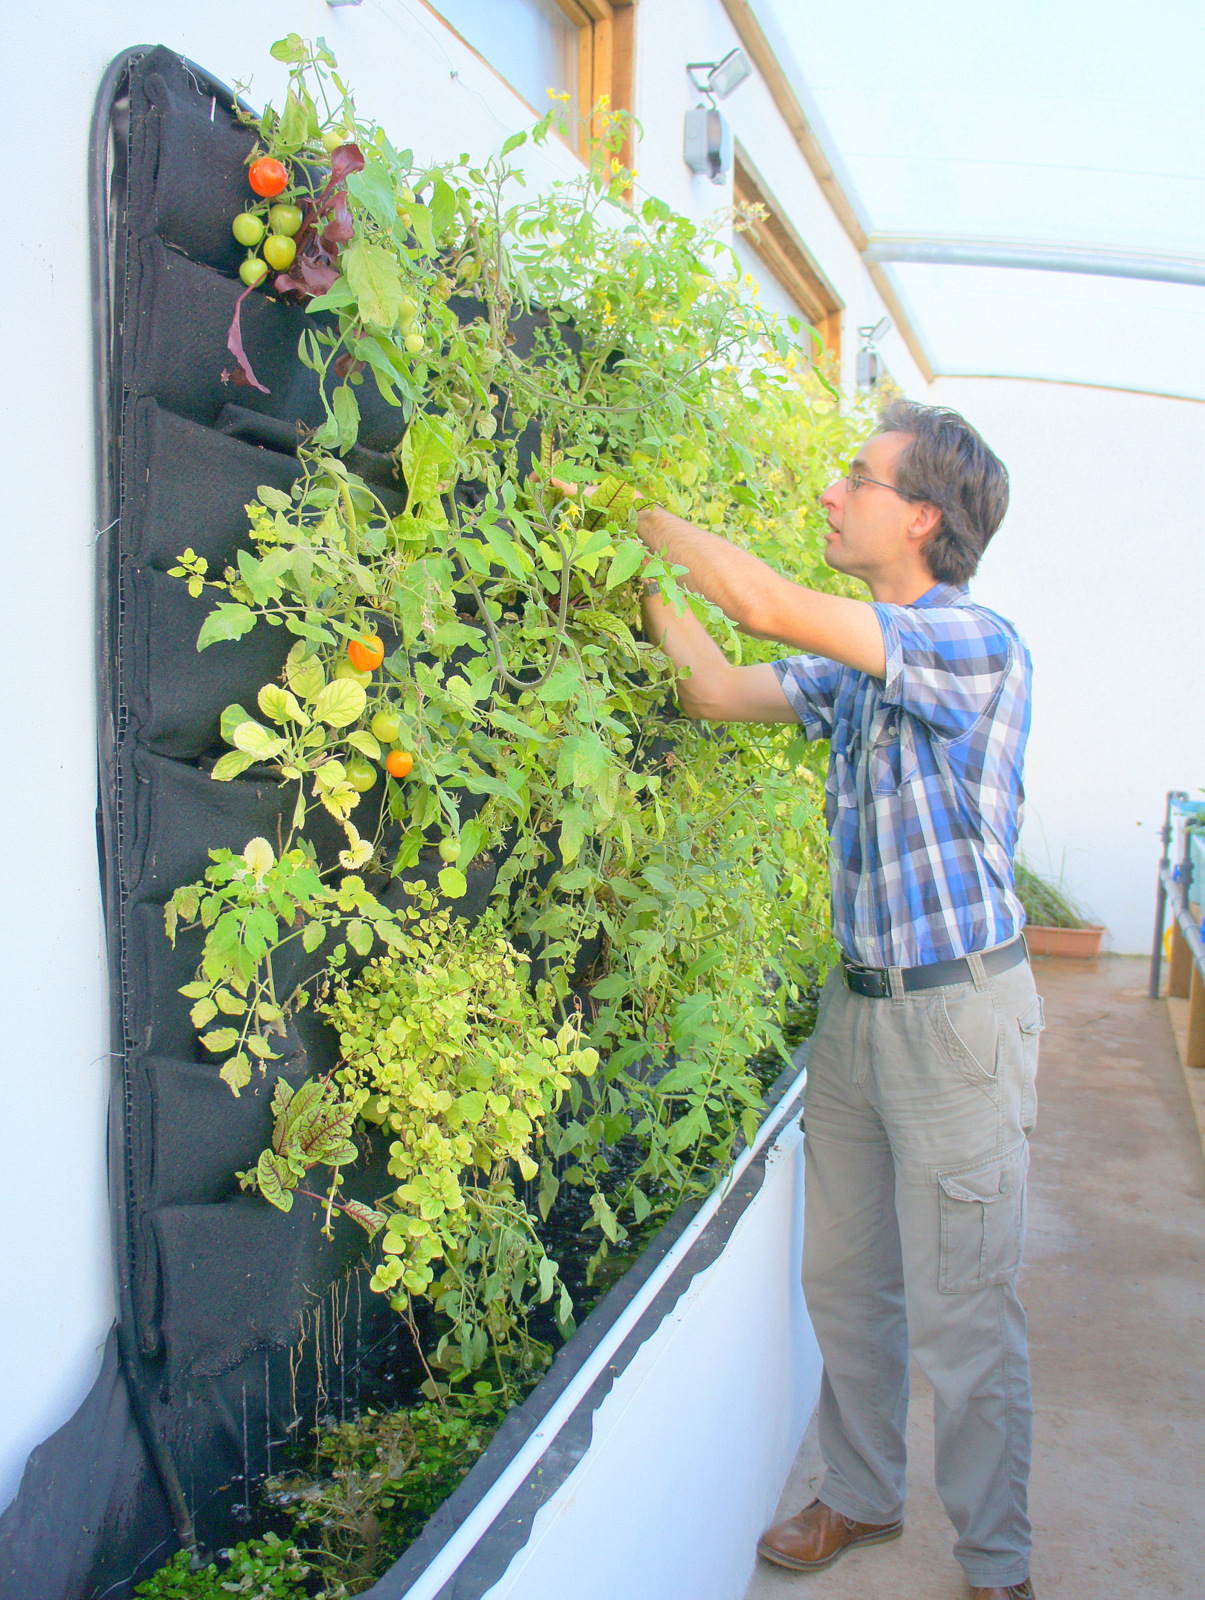 Stephen Schofield of Eden Green Walls. Humber By Nature.Solar Aquaponic Greenhouse, Florafelt System